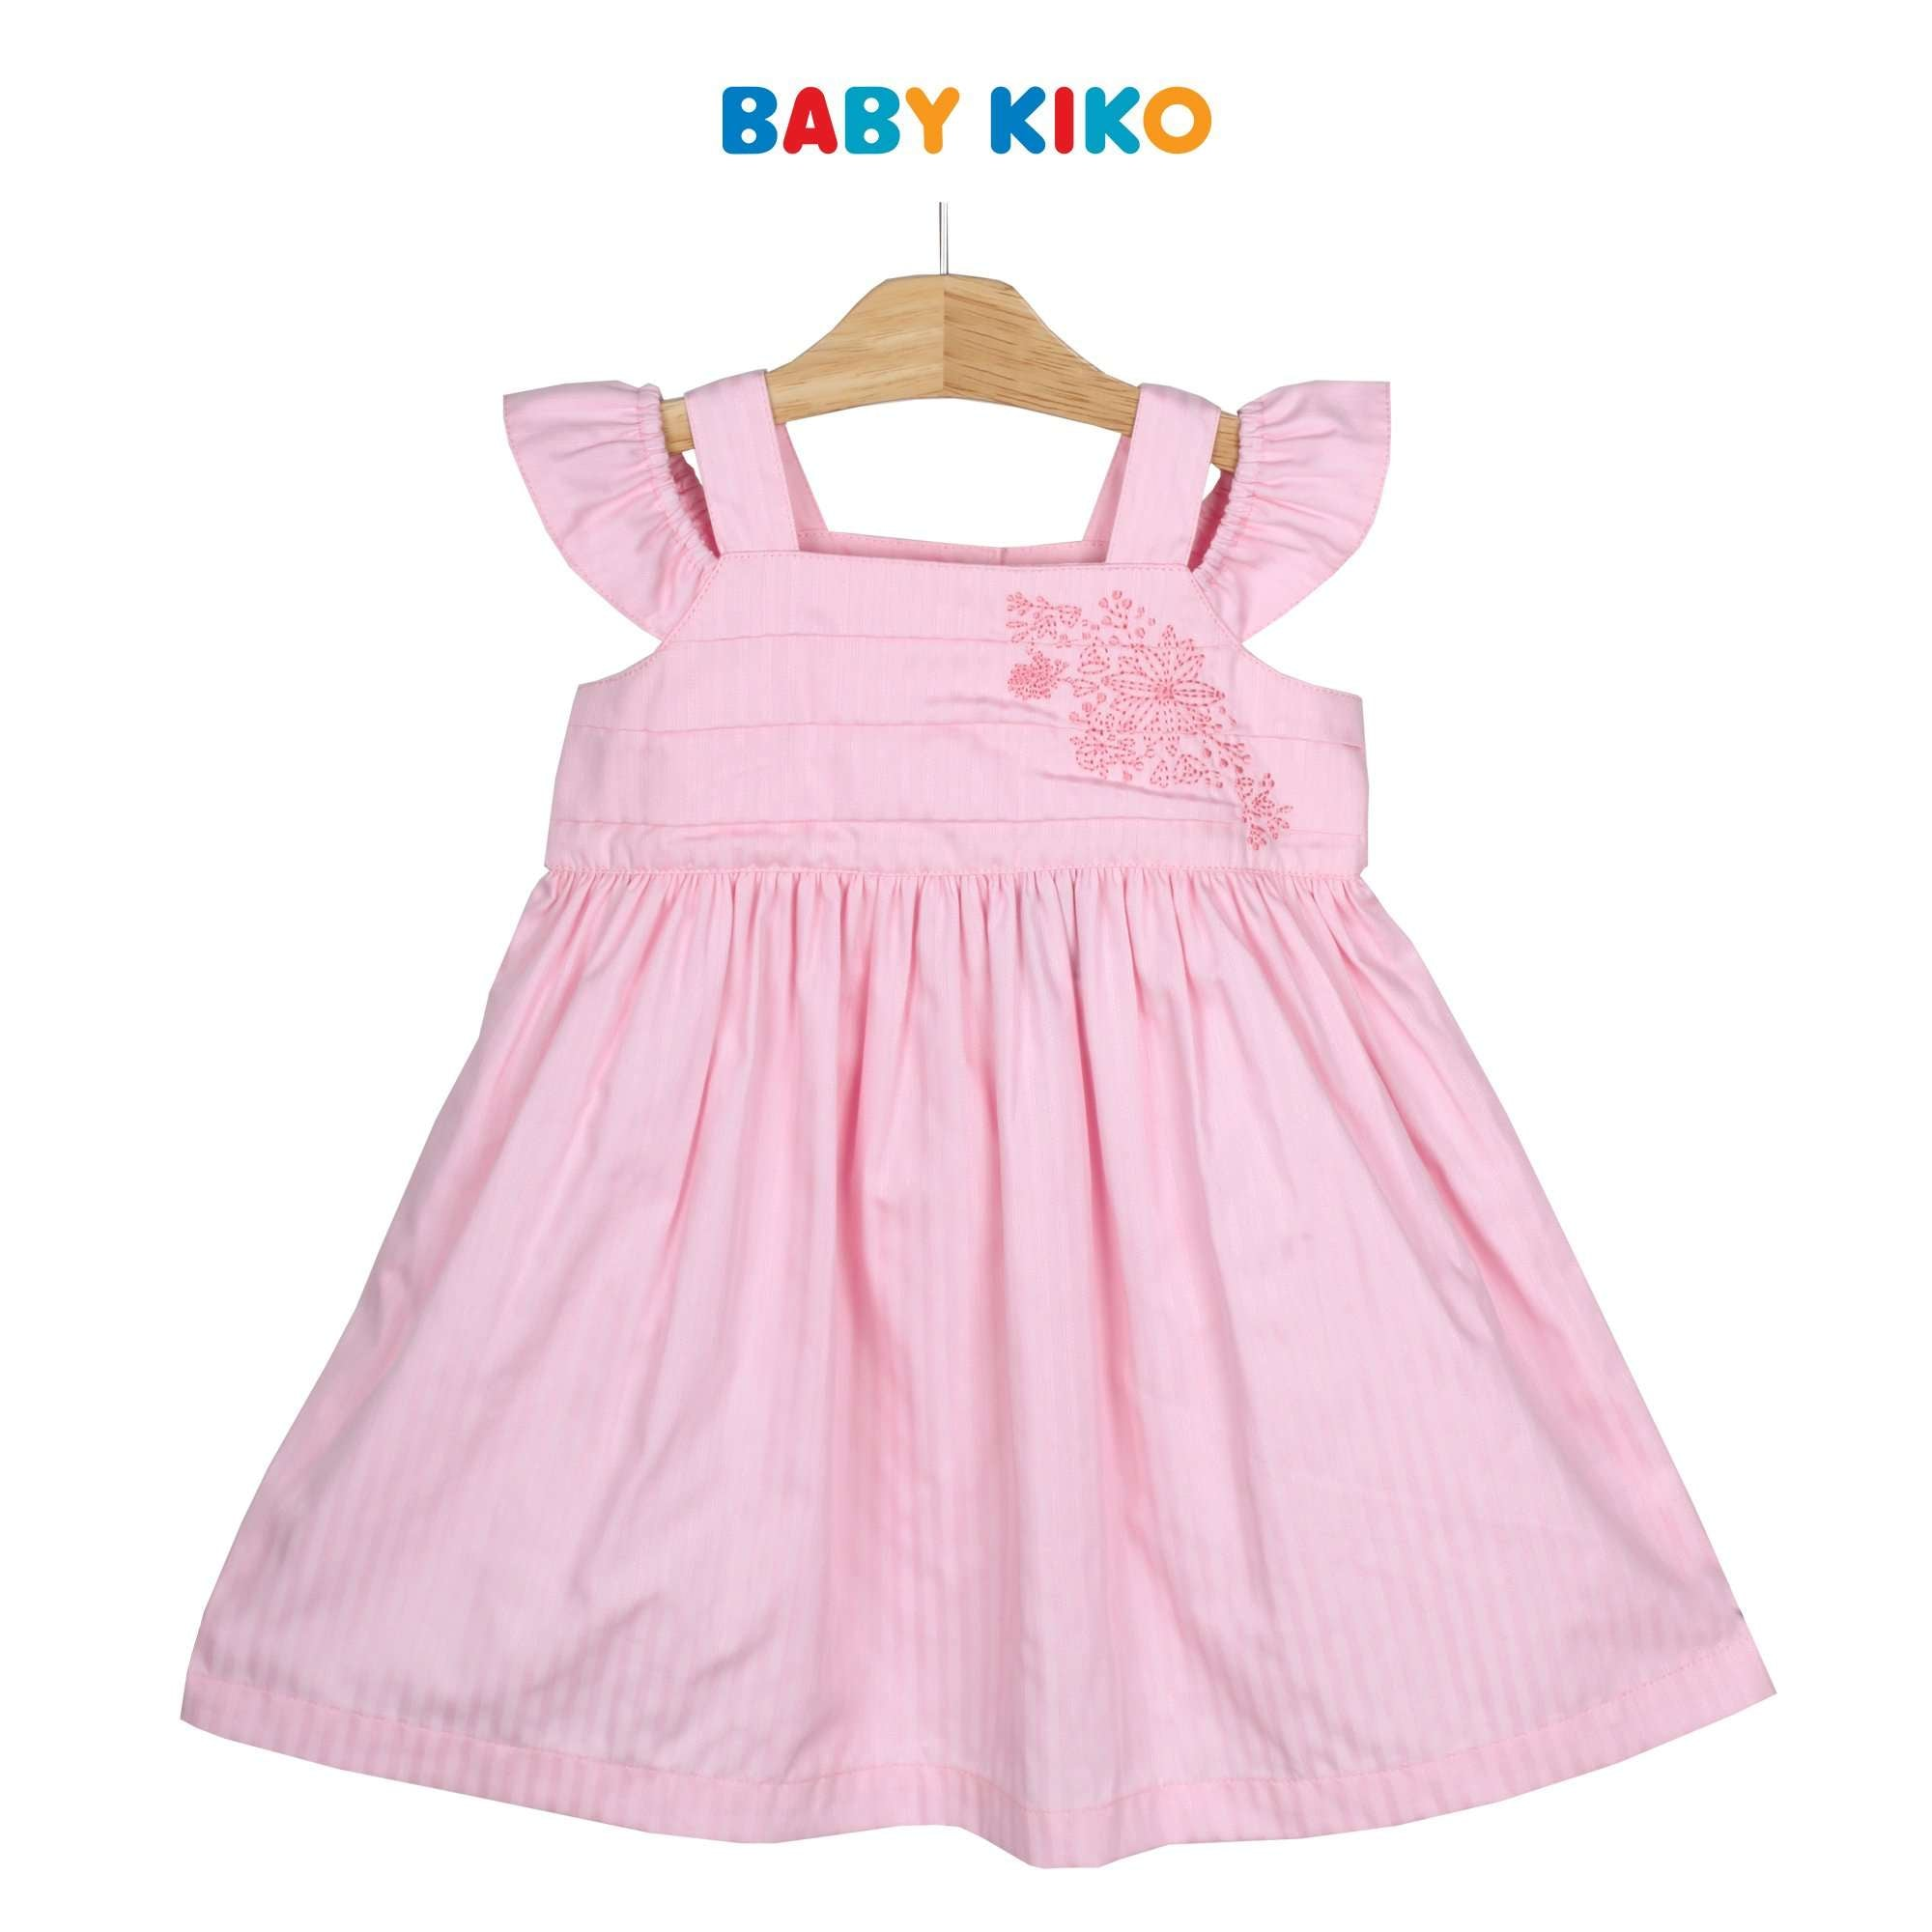 Baby KIKO Toddler Girl Short Sleeve Dress - Pink 315142-312 : Buy Baby KIKO online at CMG.MY